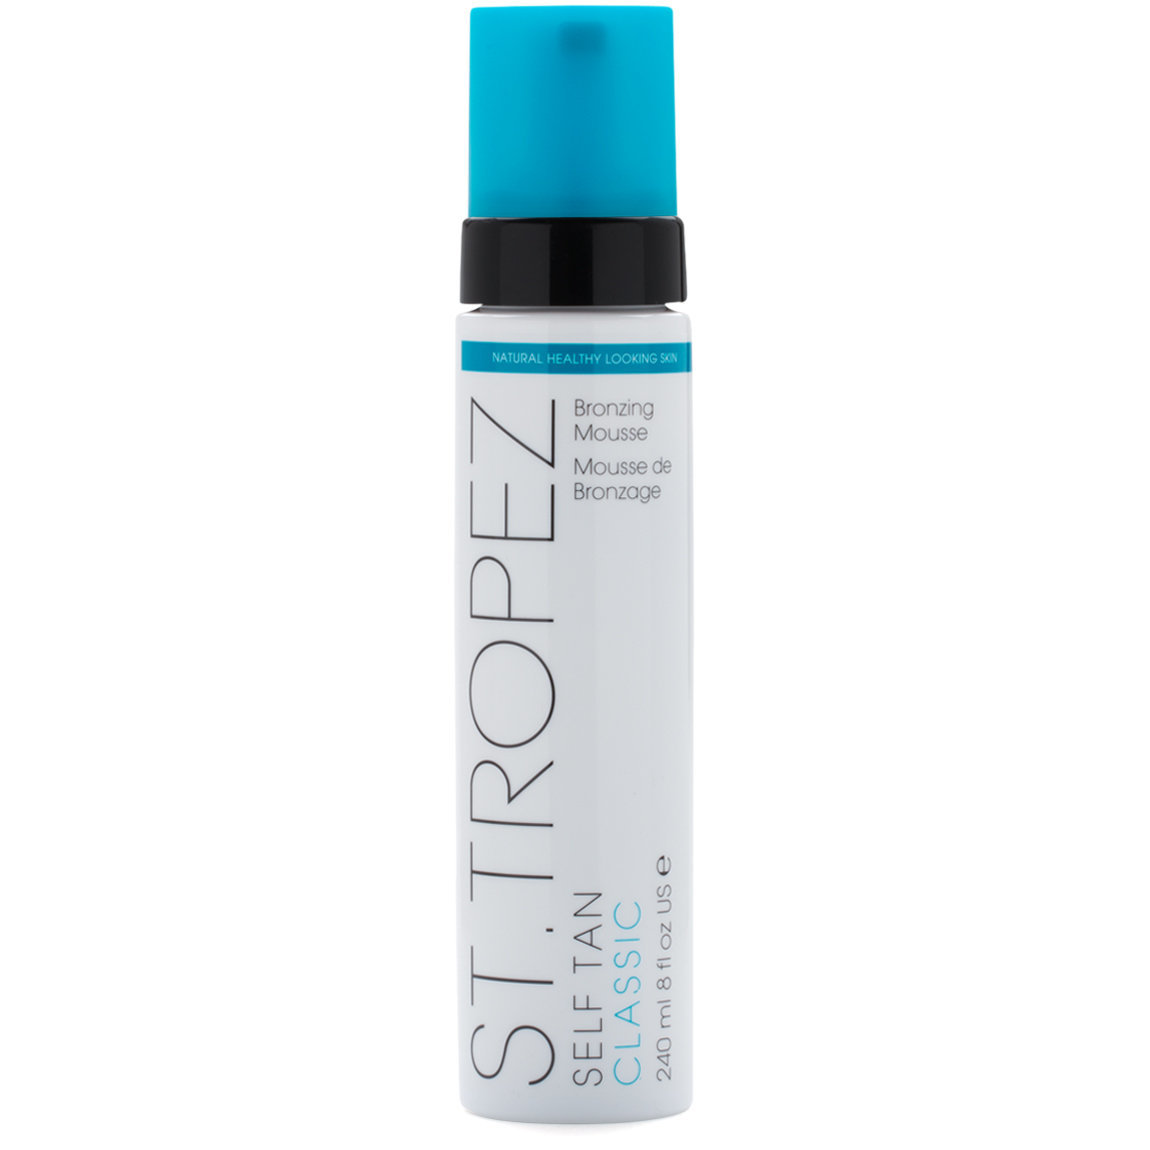 St. Tropez Self Tan Classic Bronzing Mousse 240 ml product smear.